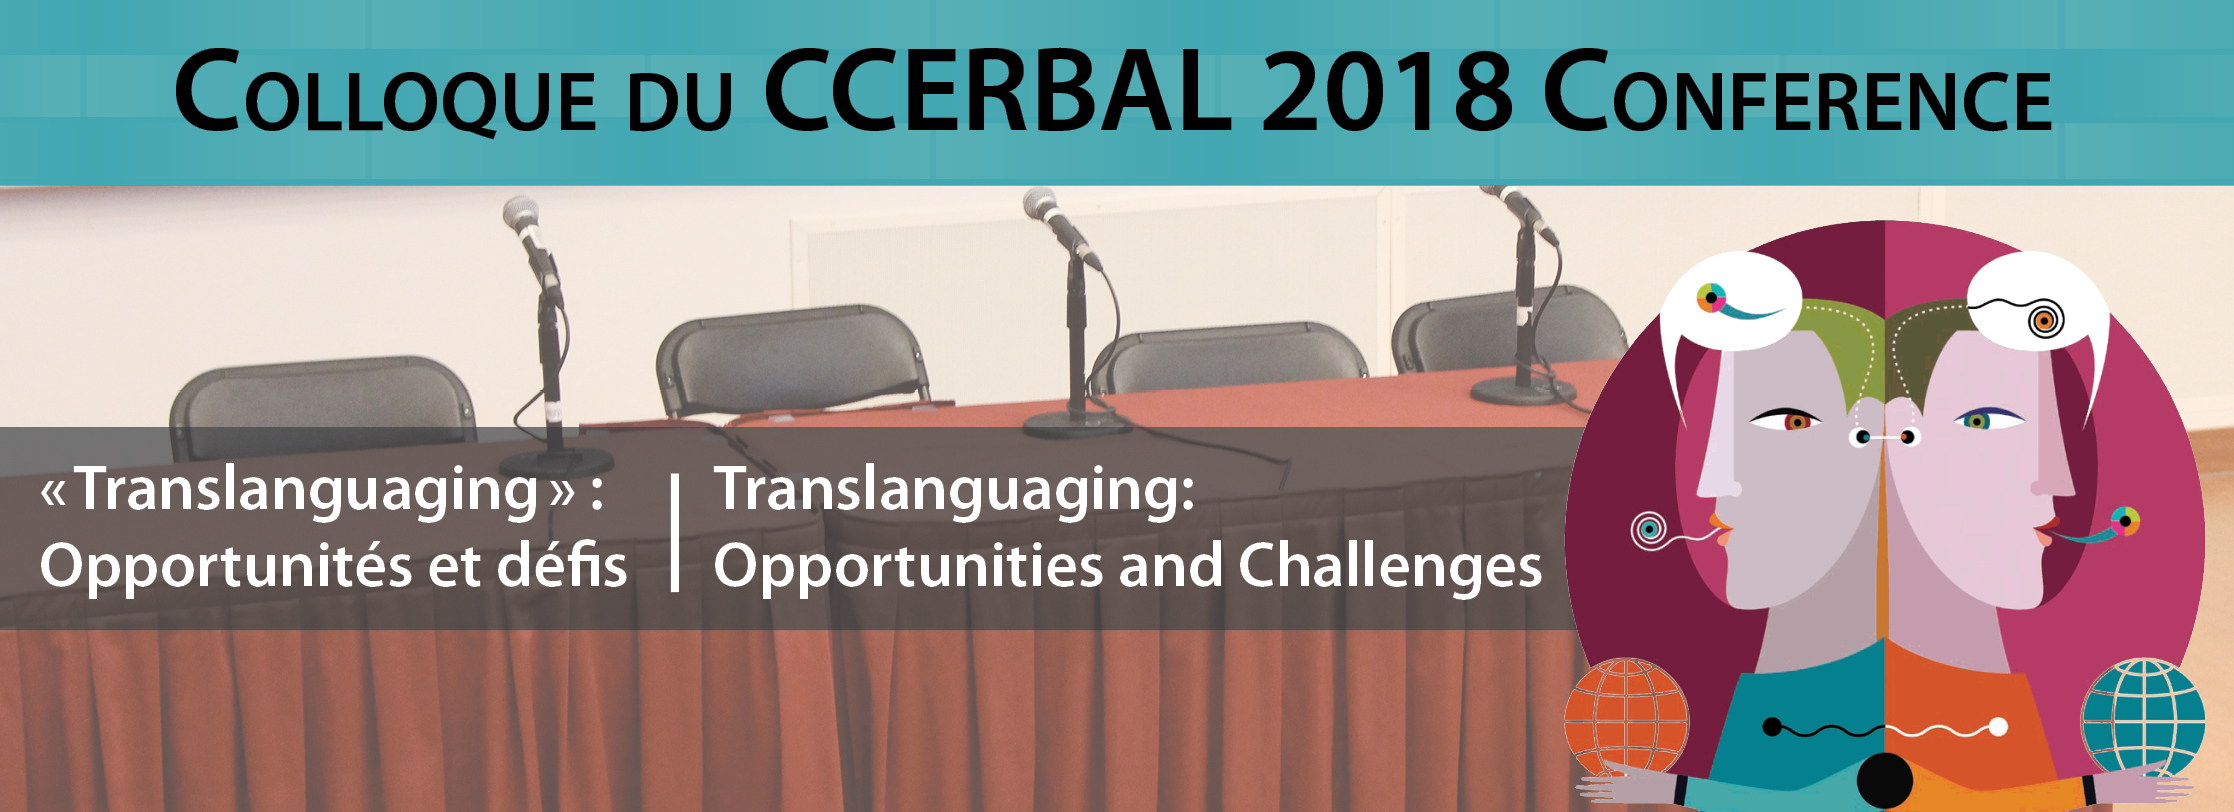 ccerbal_colloque_2018_bil_web_banner_v2